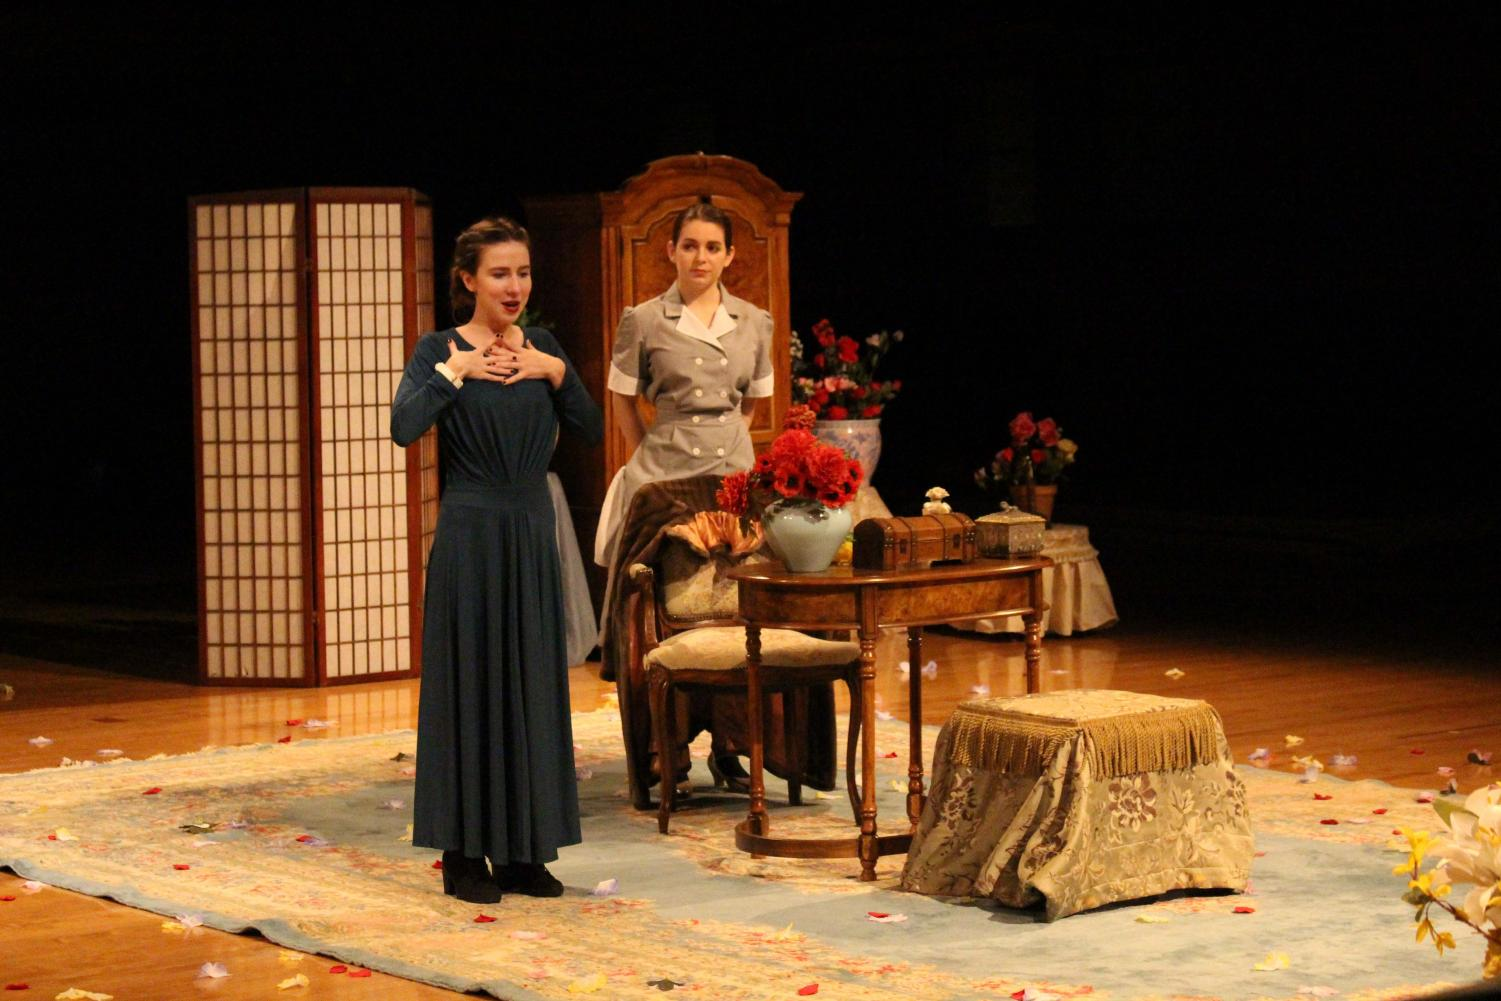 College senior Eliana Meyerowitz directs a sinister production of The Maids, a play by Jean Genet that explores themes of oppression and violence.